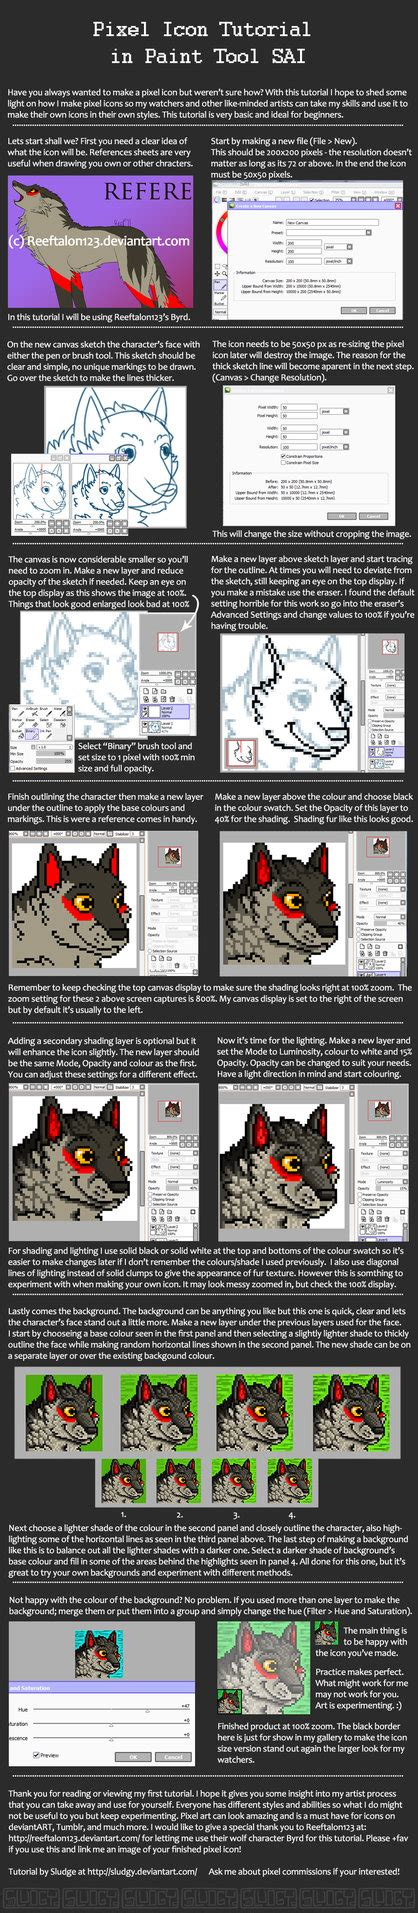 paint tool sai pixel tutorial pixel icon tutorial in paint tool sai by sludgy on deviantart